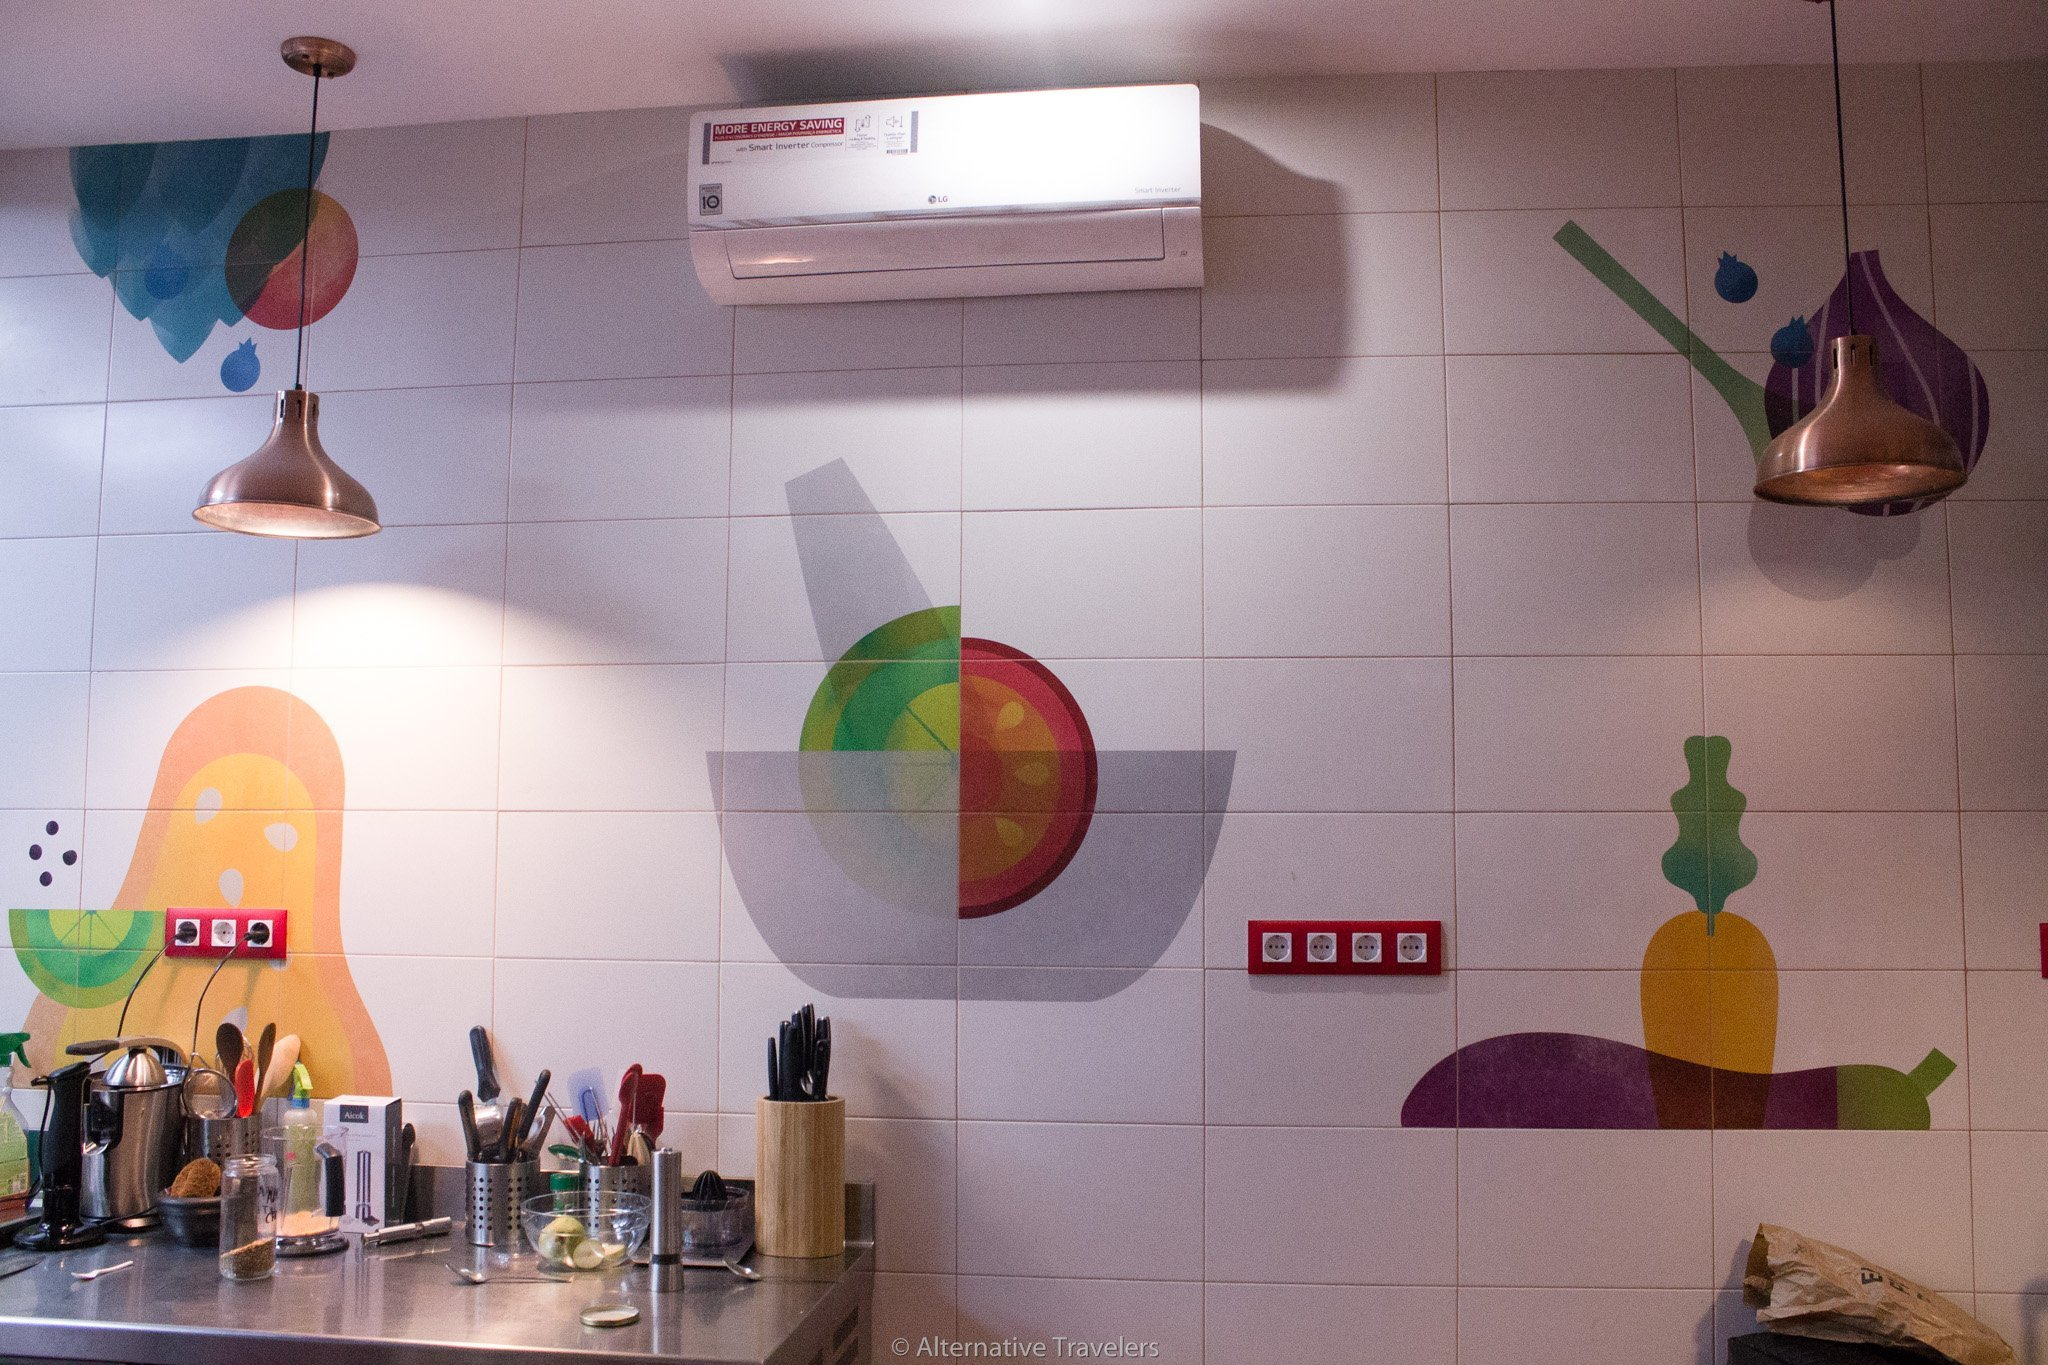 Kitchen and painted vegetables on the walls at Landareak, a vegan restaurant in Madrid